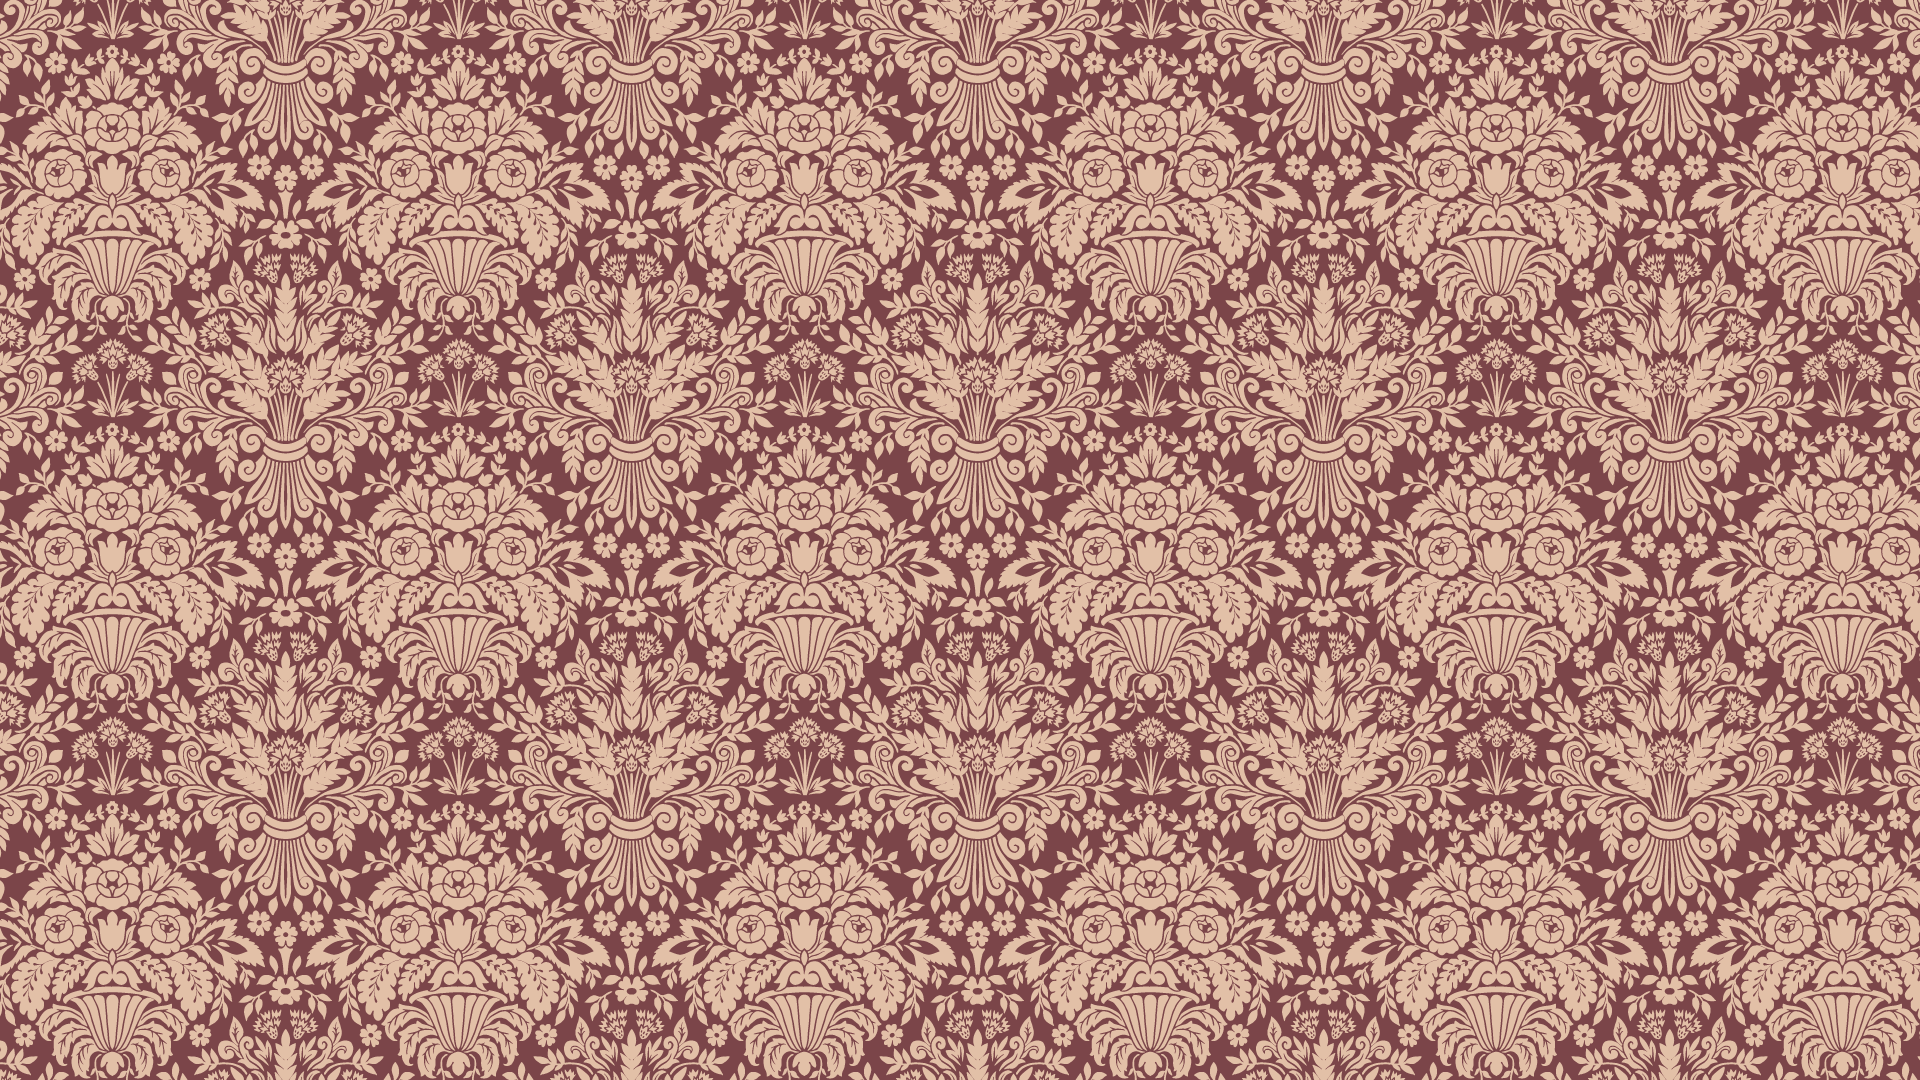 Damask-example01.png